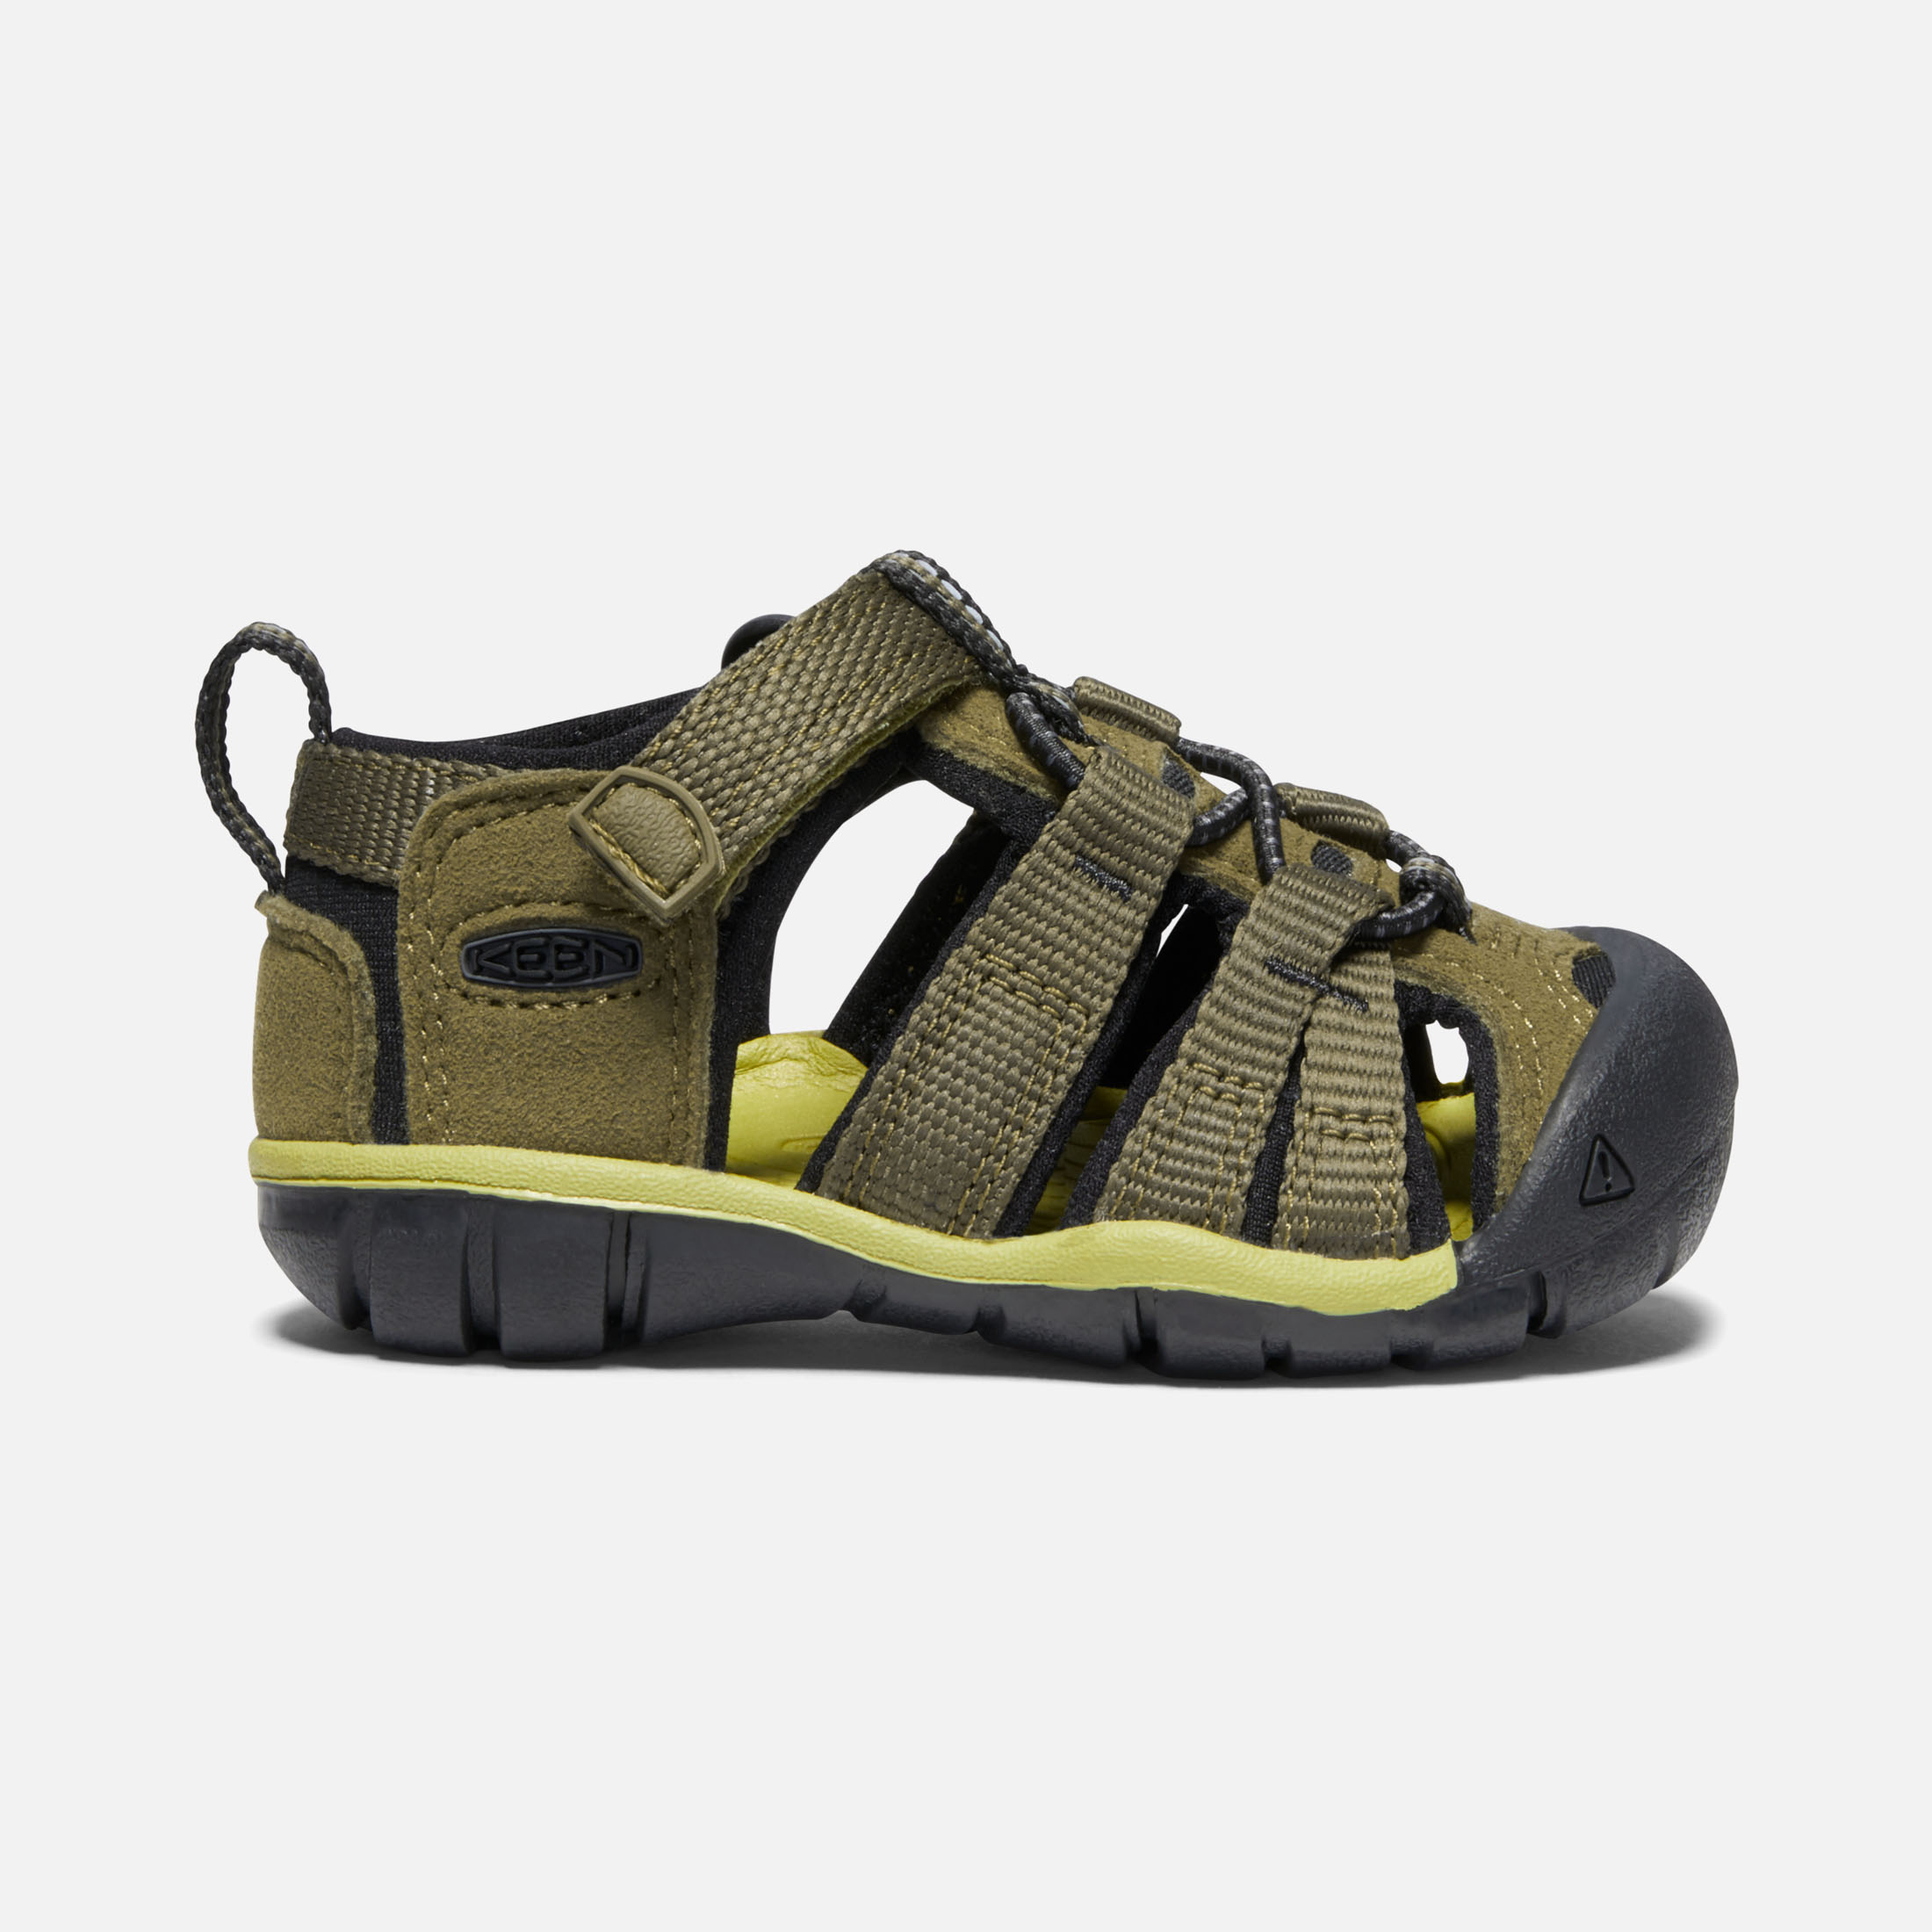 4e236a96c95 Toddlers' Seacamp II CNX Water Sandals | KEEN Footwear